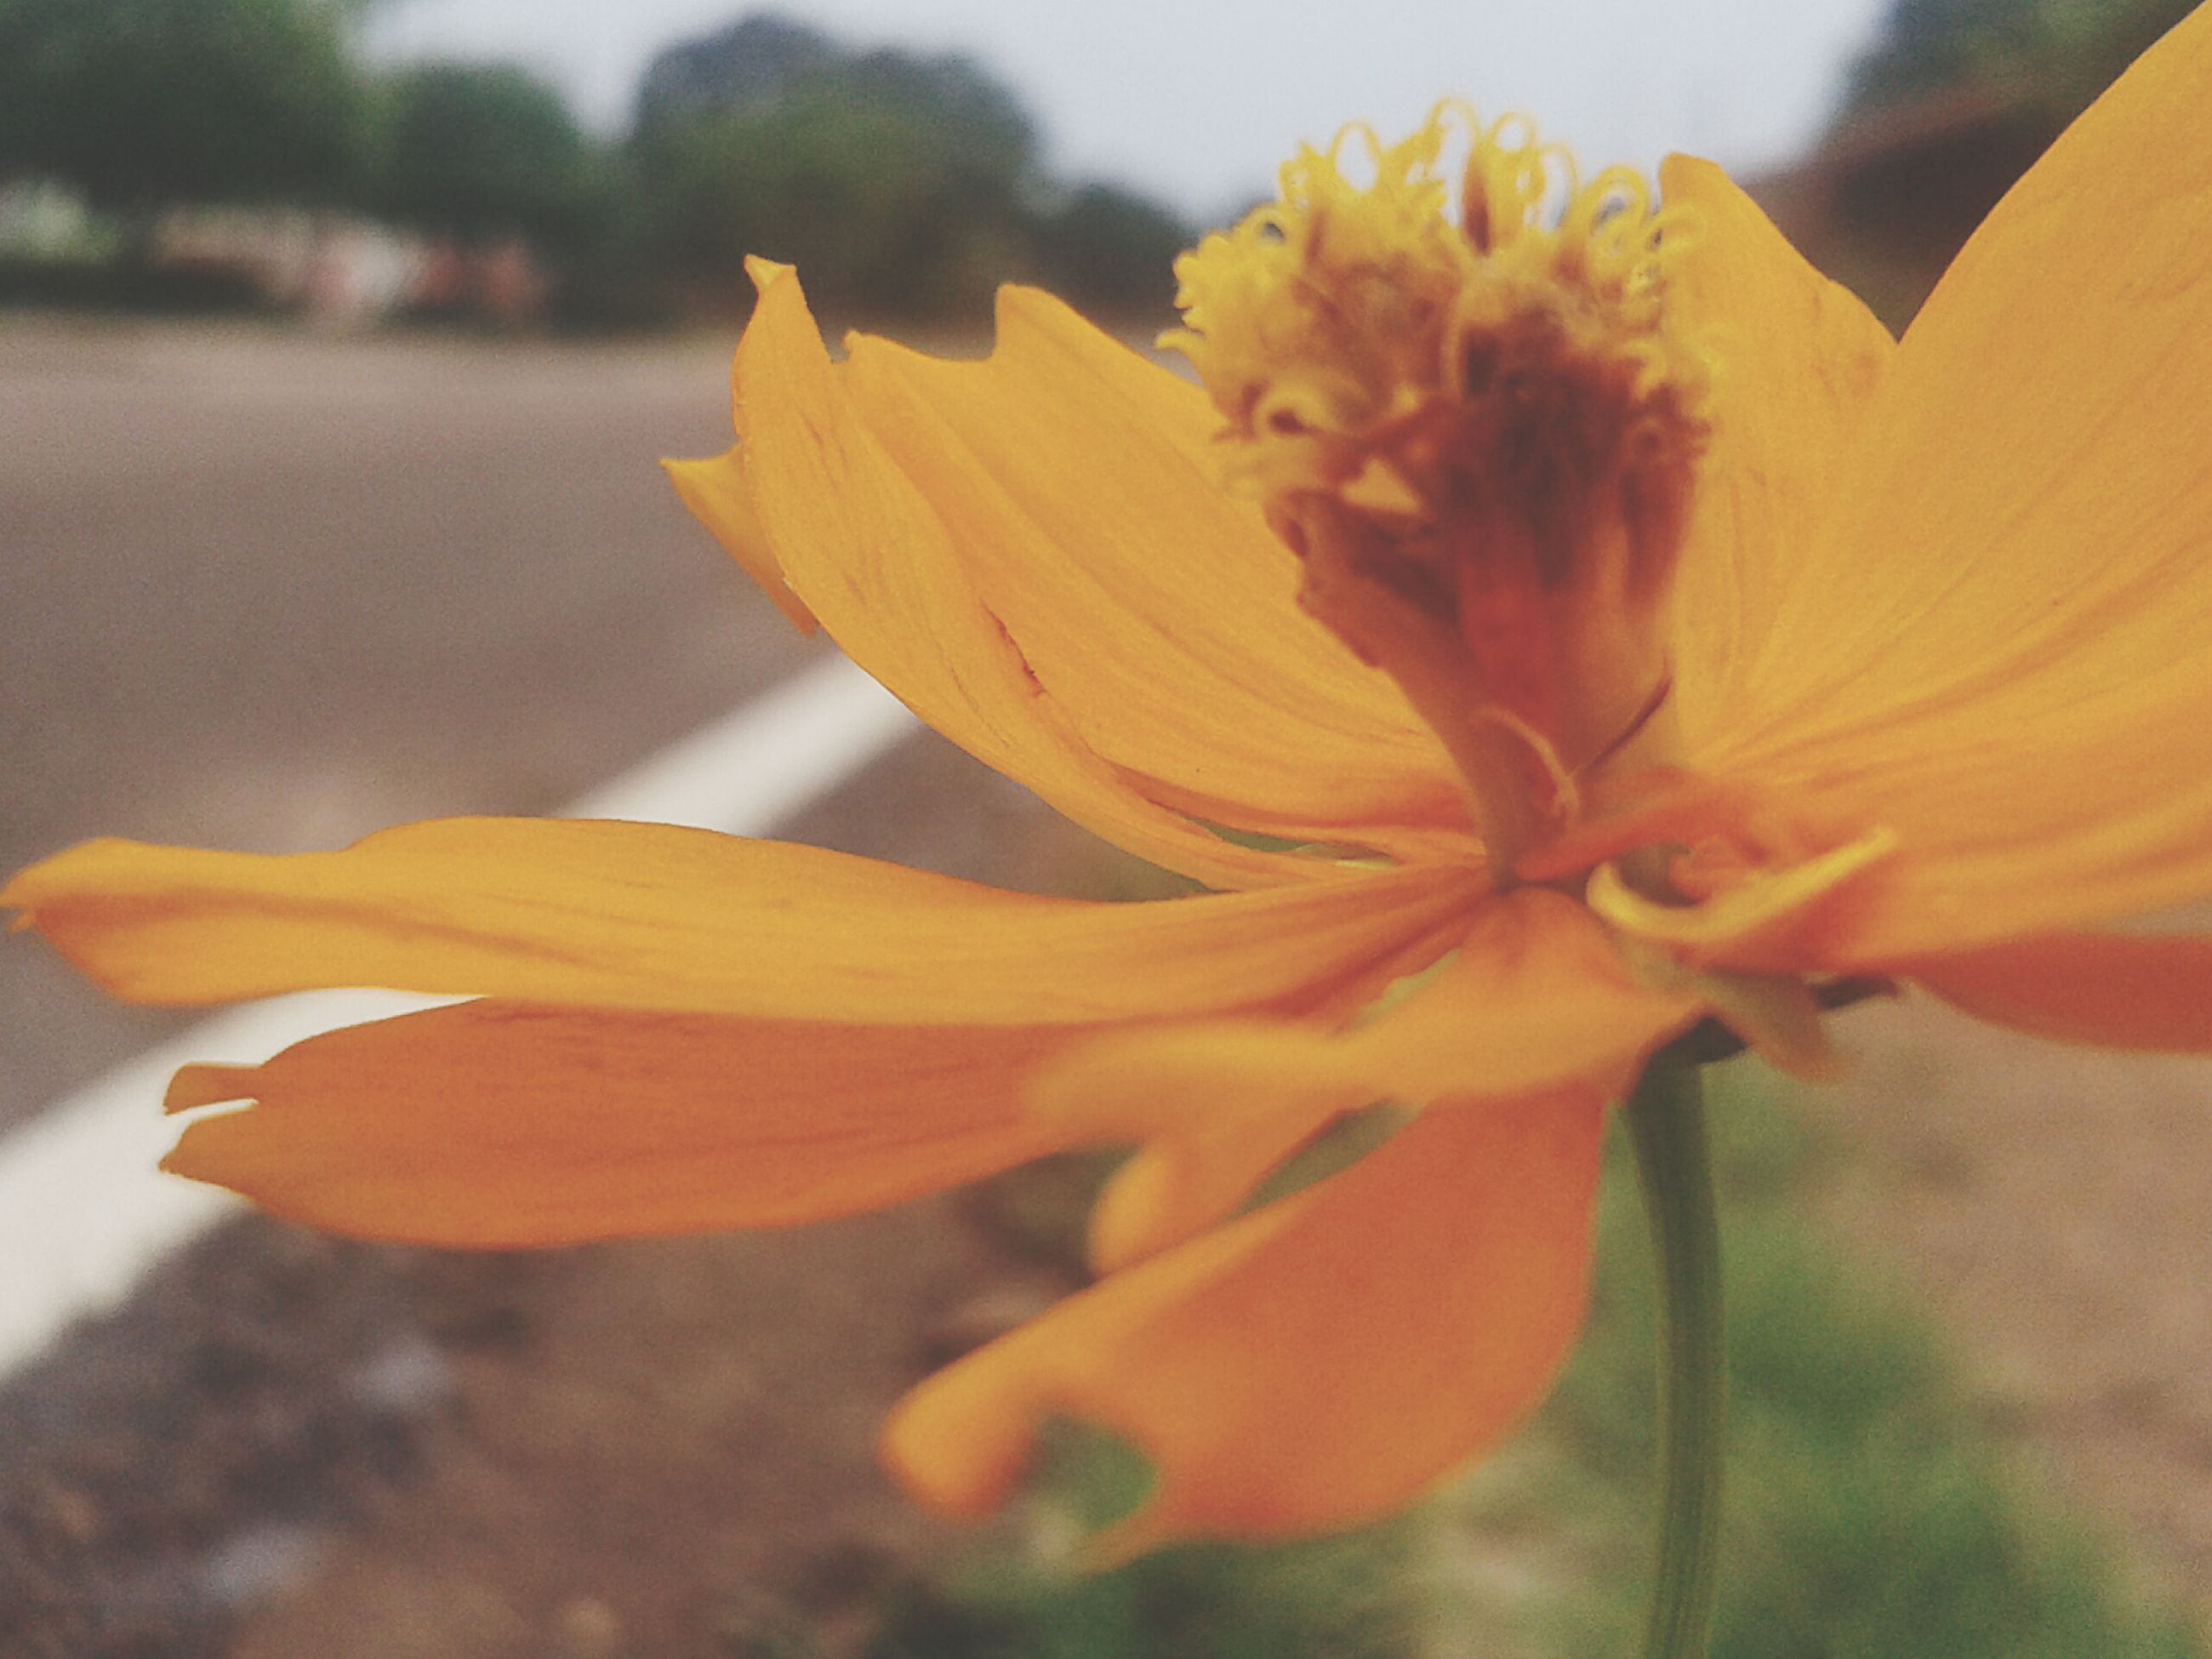 flower, petal, fragility, flower head, freshness, close-up, beauty in nature, growth, focus on foreground, orange color, yellow, pollen, blooming, nature, stamen, single flower, plant, in bloom, selective focus, outdoors